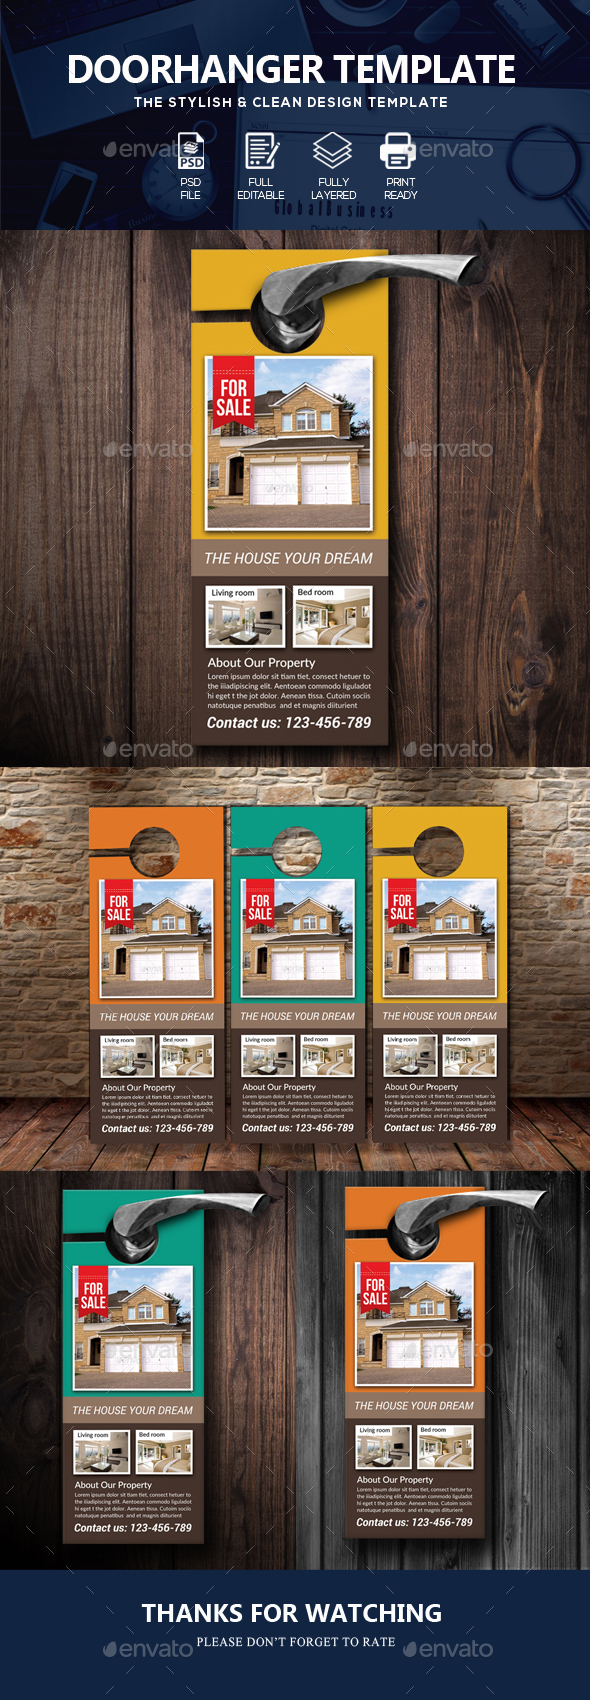 Real Estate Door Hanger Template by Business_Flyers | GraphicRiver